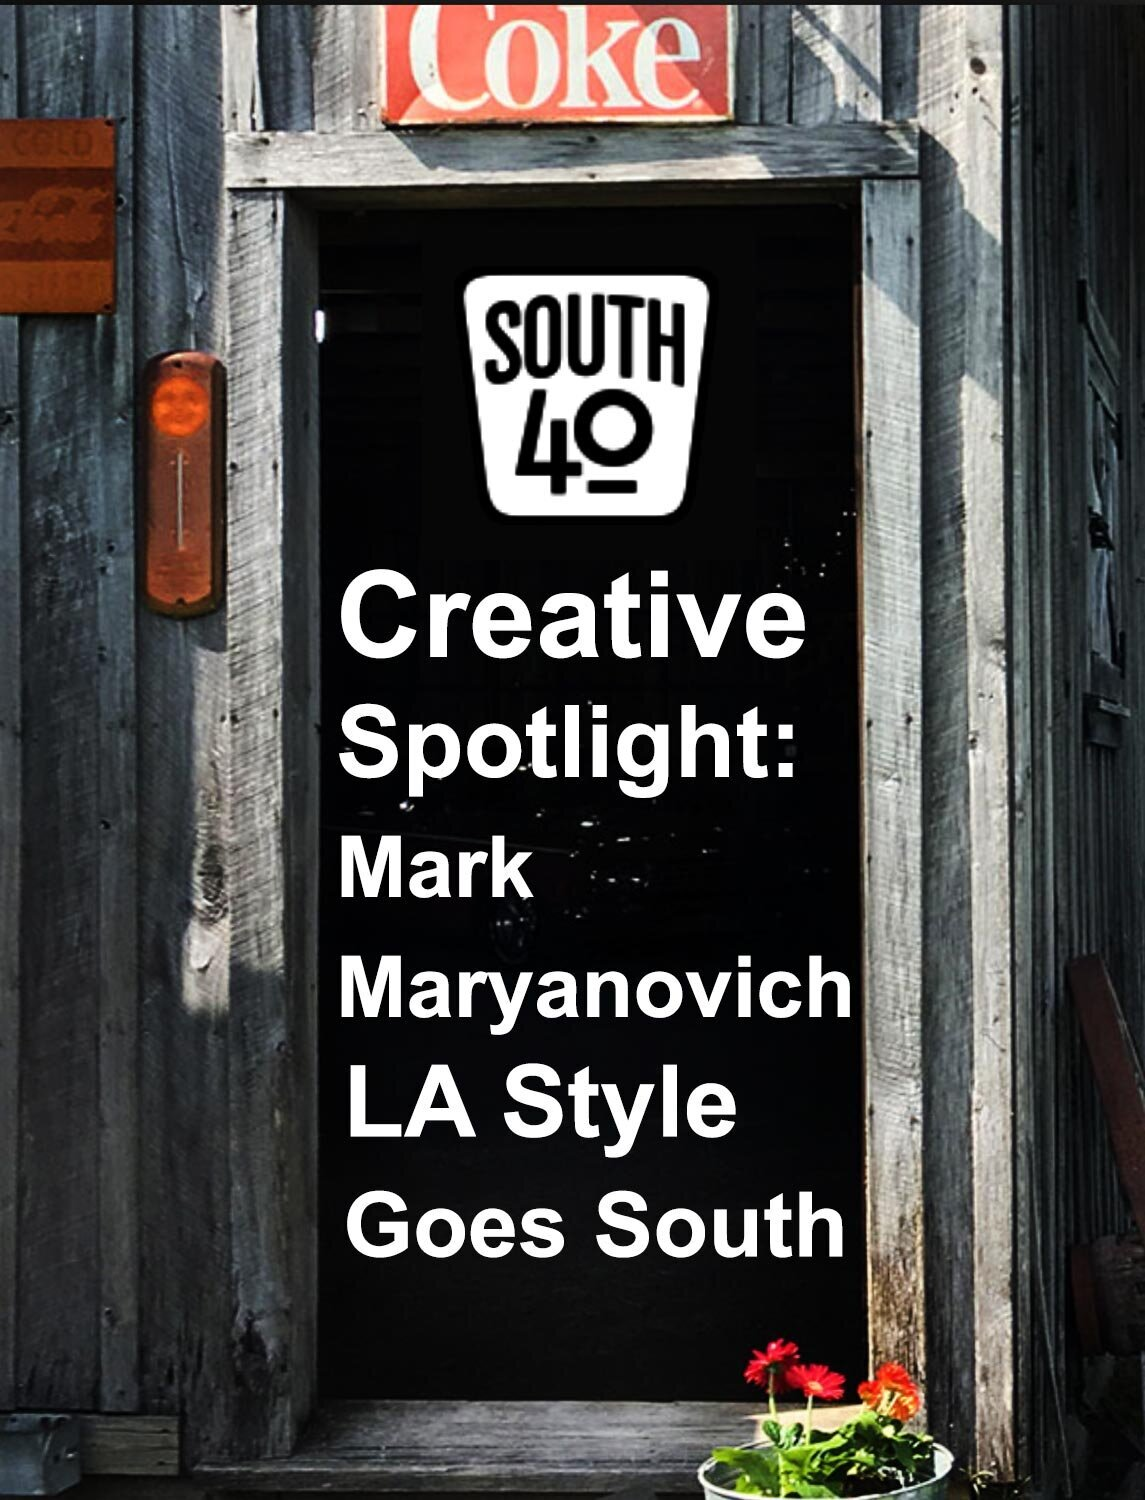 Interview with LA Photographer Mark Maryanovich South 40 Creative Spotlight white text on black door of narrow wood building page 1